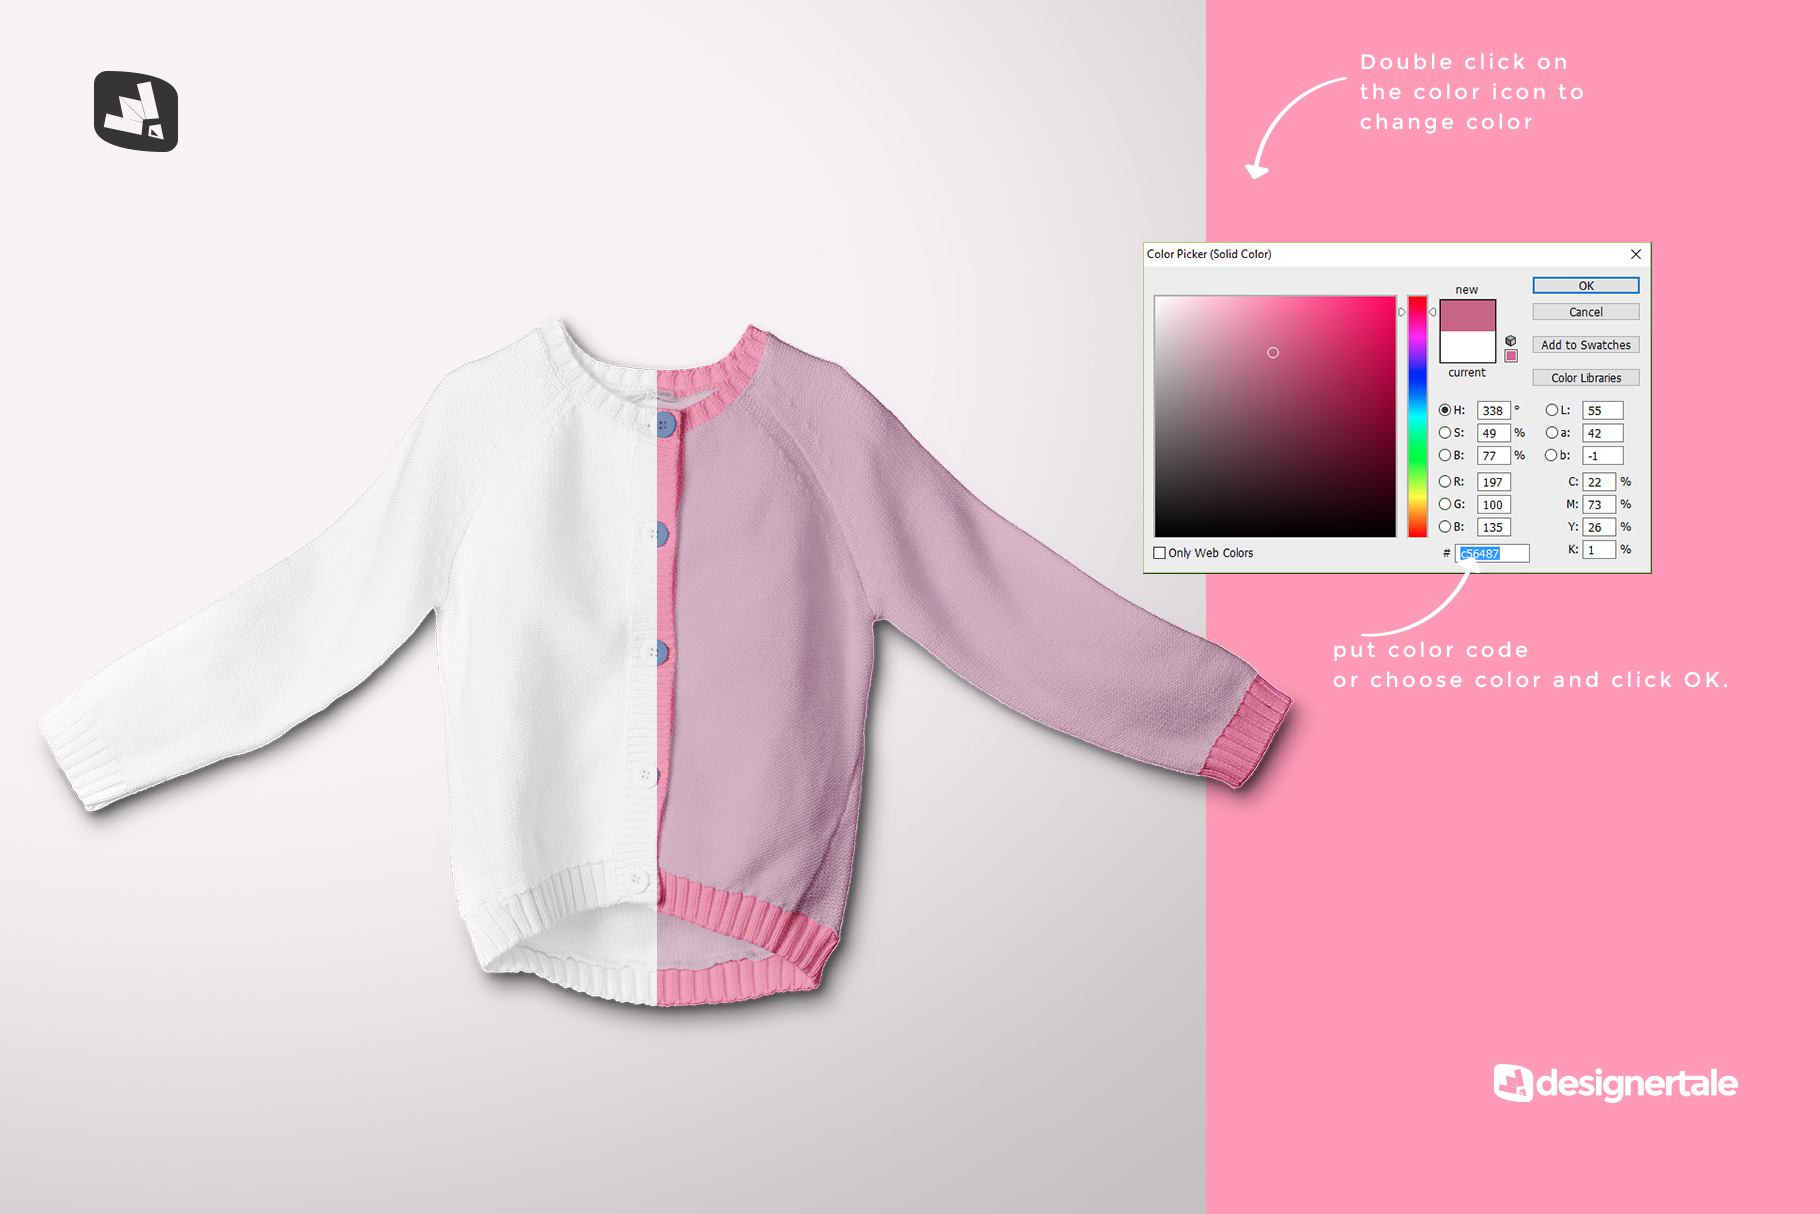 how to change color of the top view baby sweater mockup